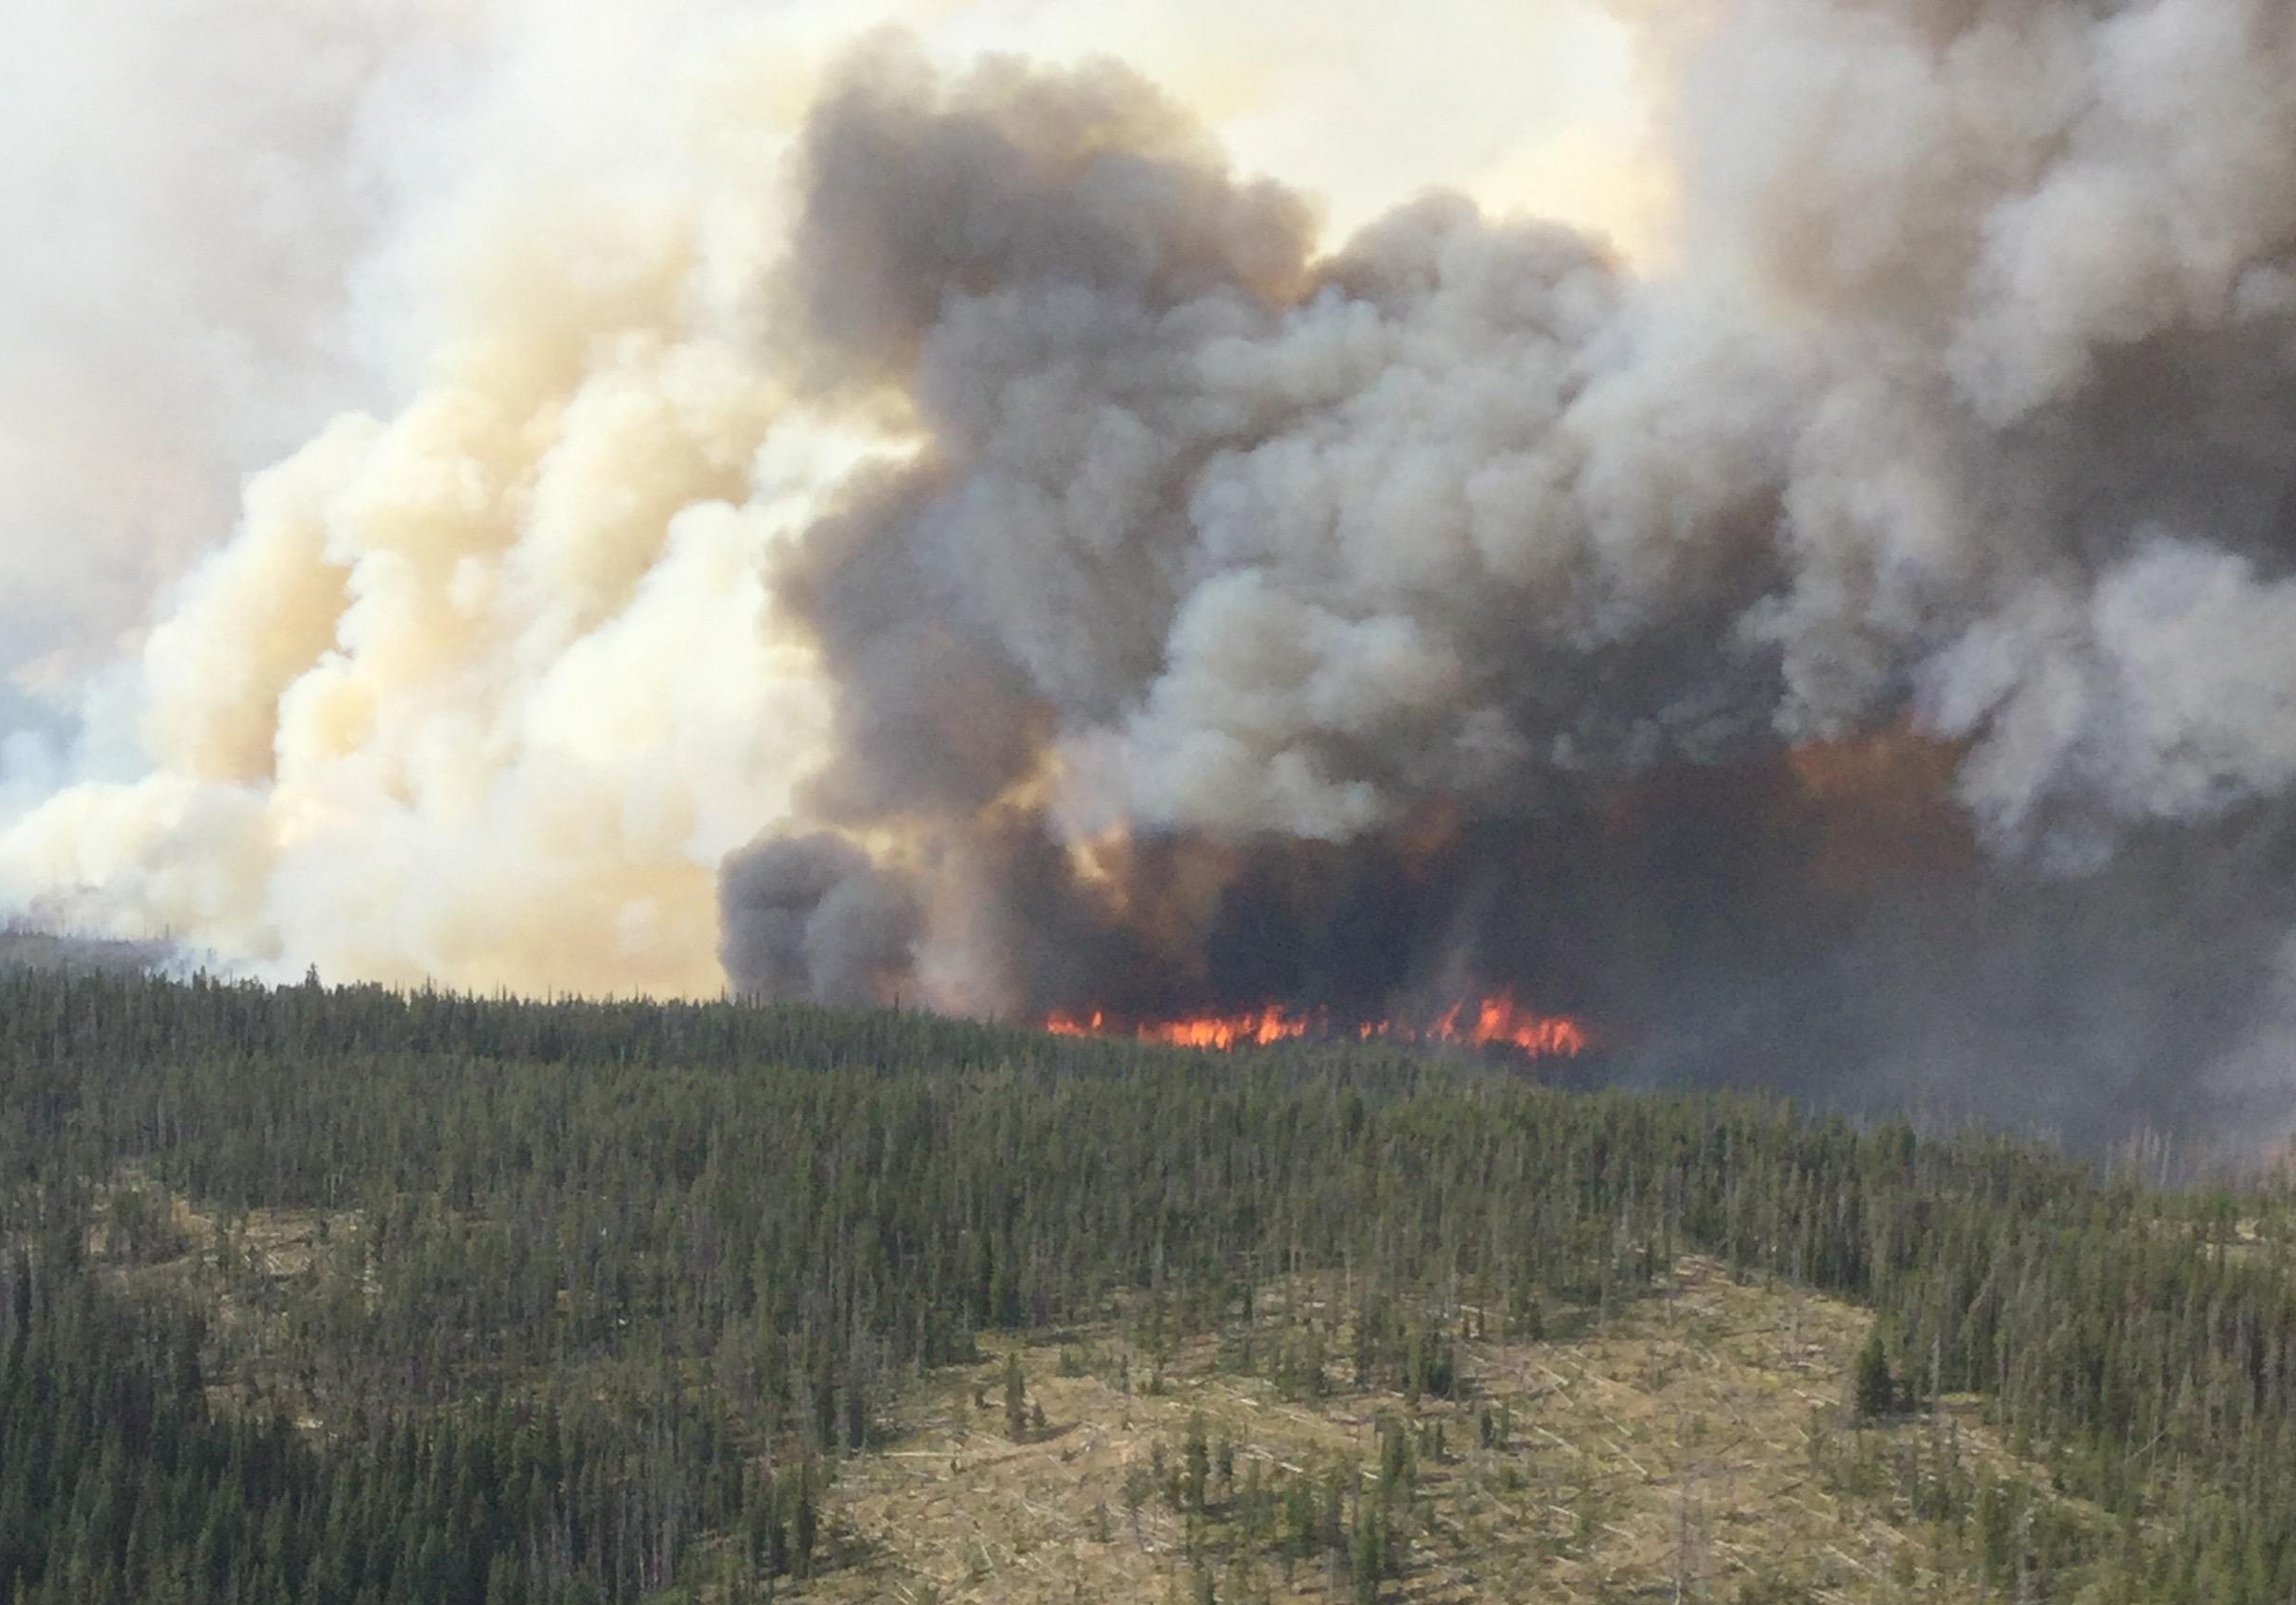 Fire officials say the Highline and Goat Fires, which is burning about 23 miles east, northeast of Warren, received spotty precipitation on Sunday with some areas receiving up to a half inch of rain. (InciWeb)